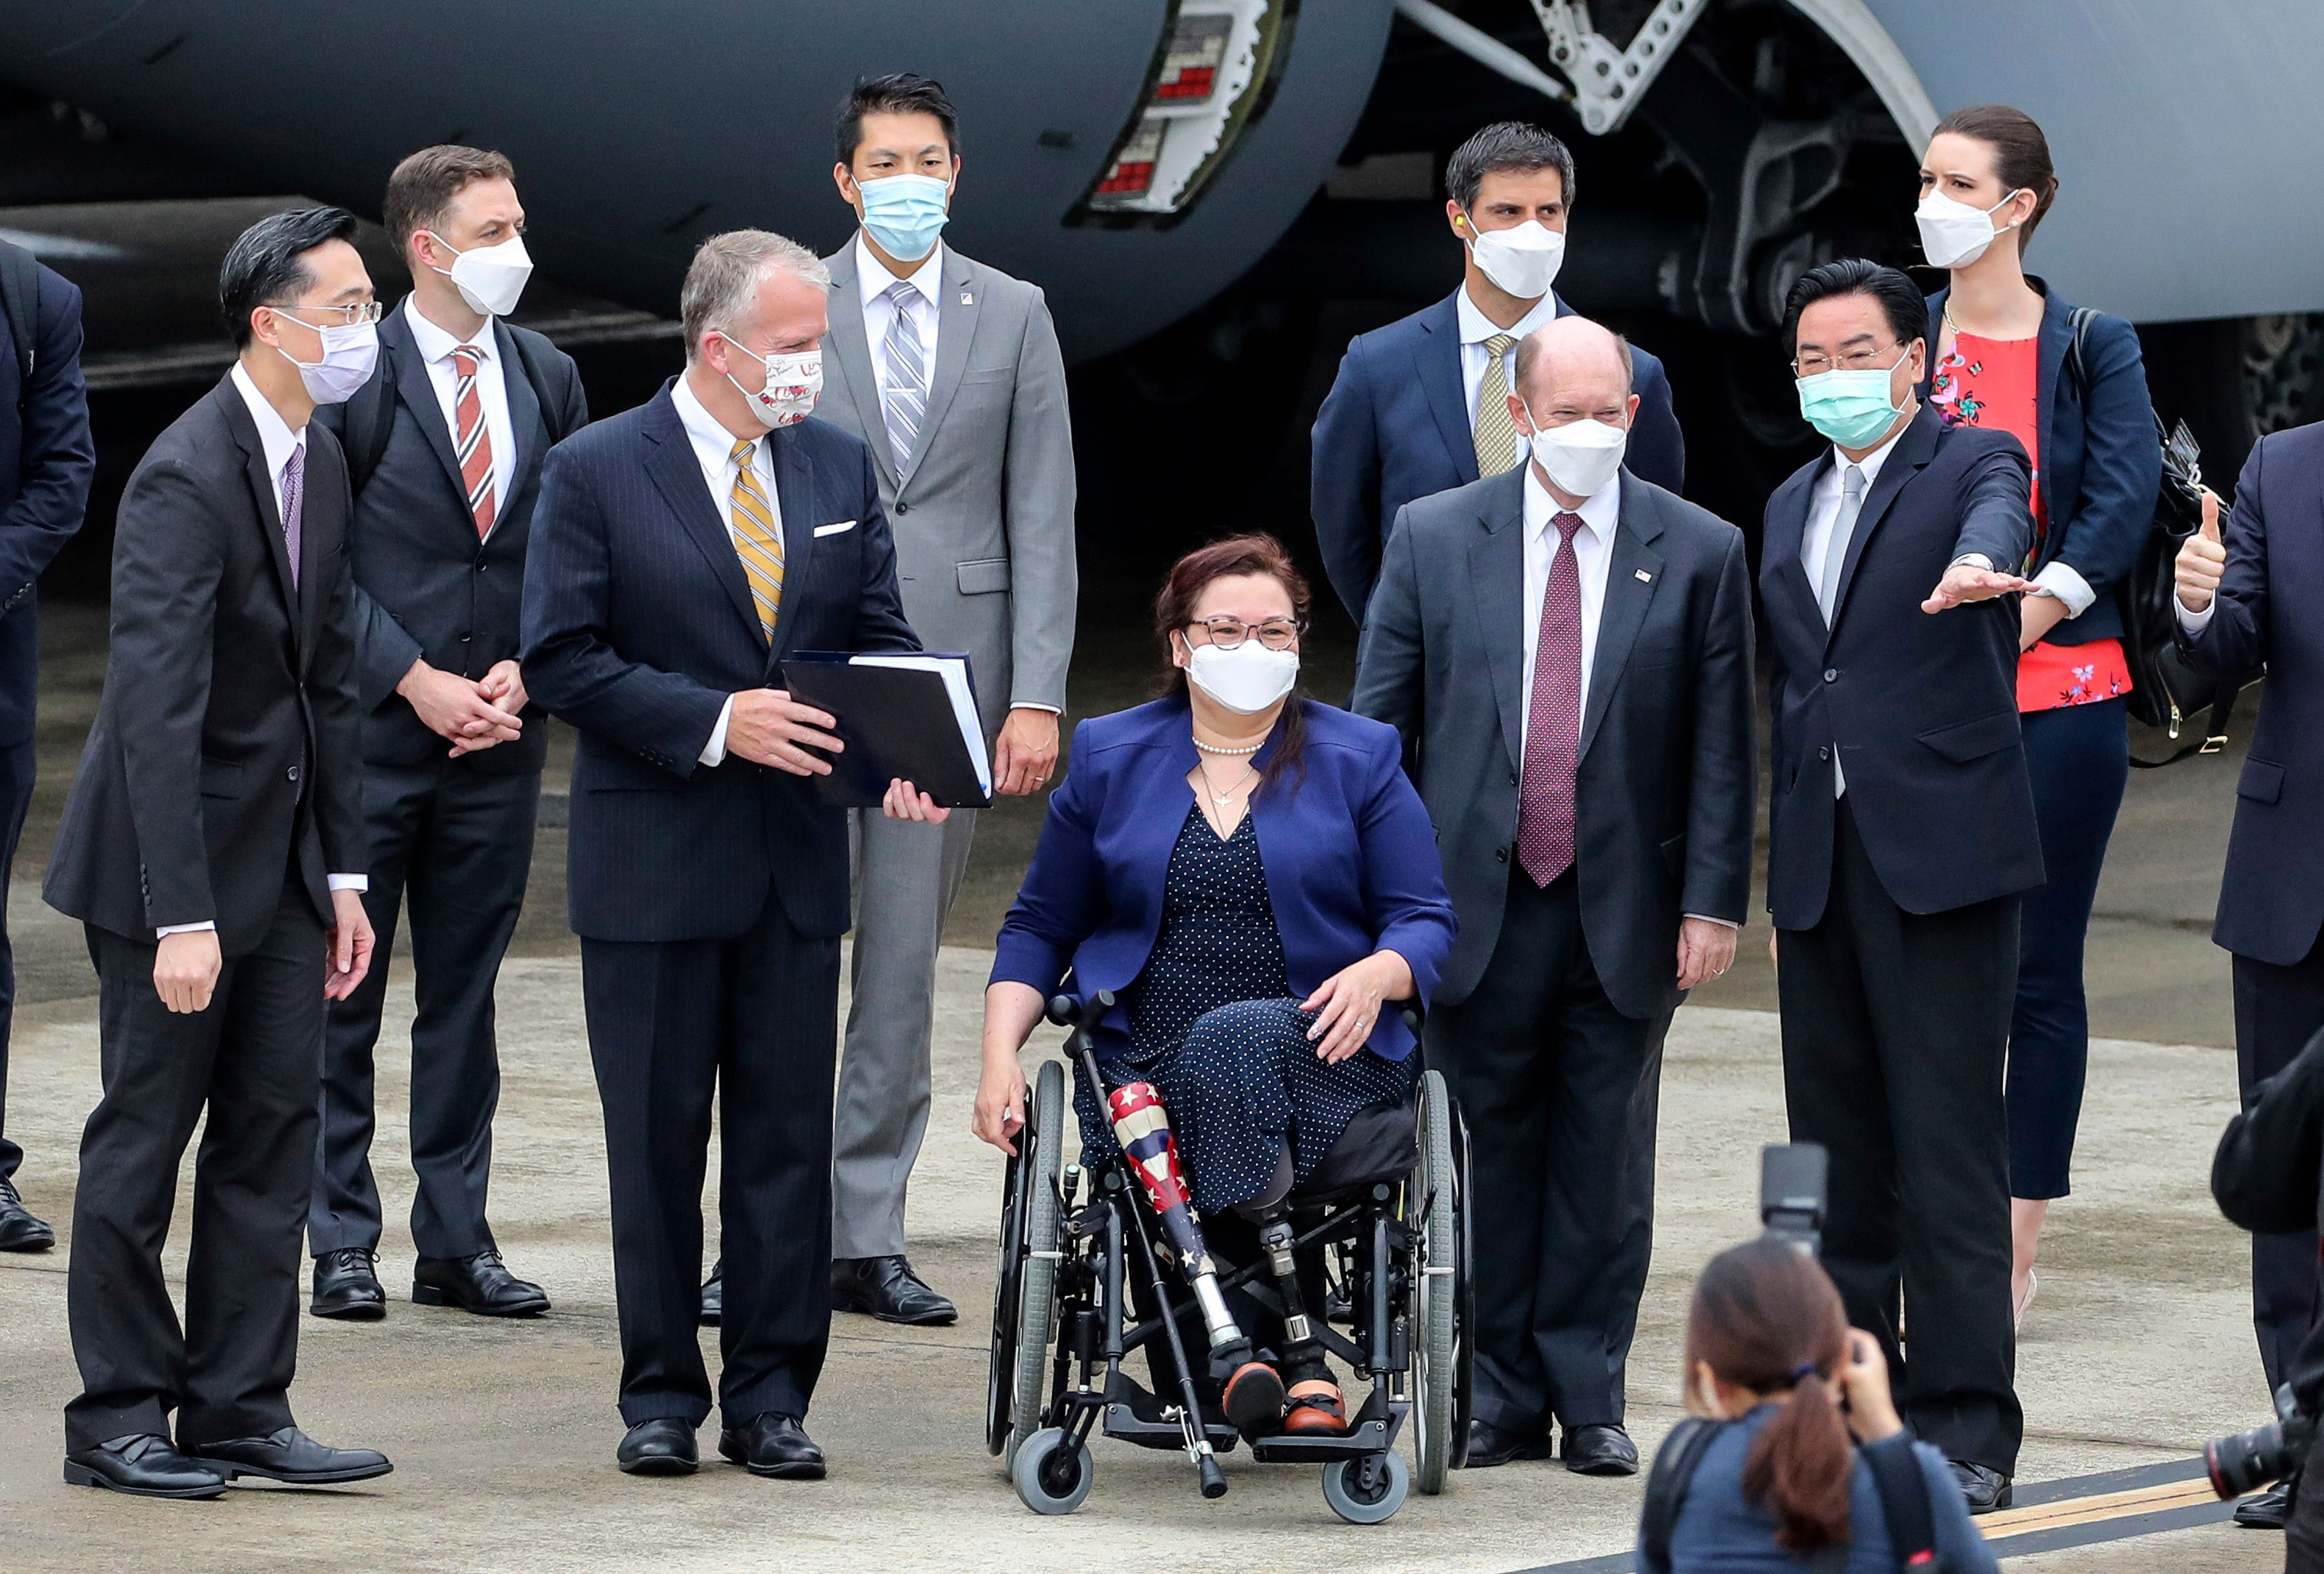 Taiwan's Foreign Minister Joseph Wu, right, gestures as he welcomes US Sens. Christopher Coons, Tammy Duckworth and Dan Sullivan at Songshan Airport in Taipei, Taiwan, on June 6.